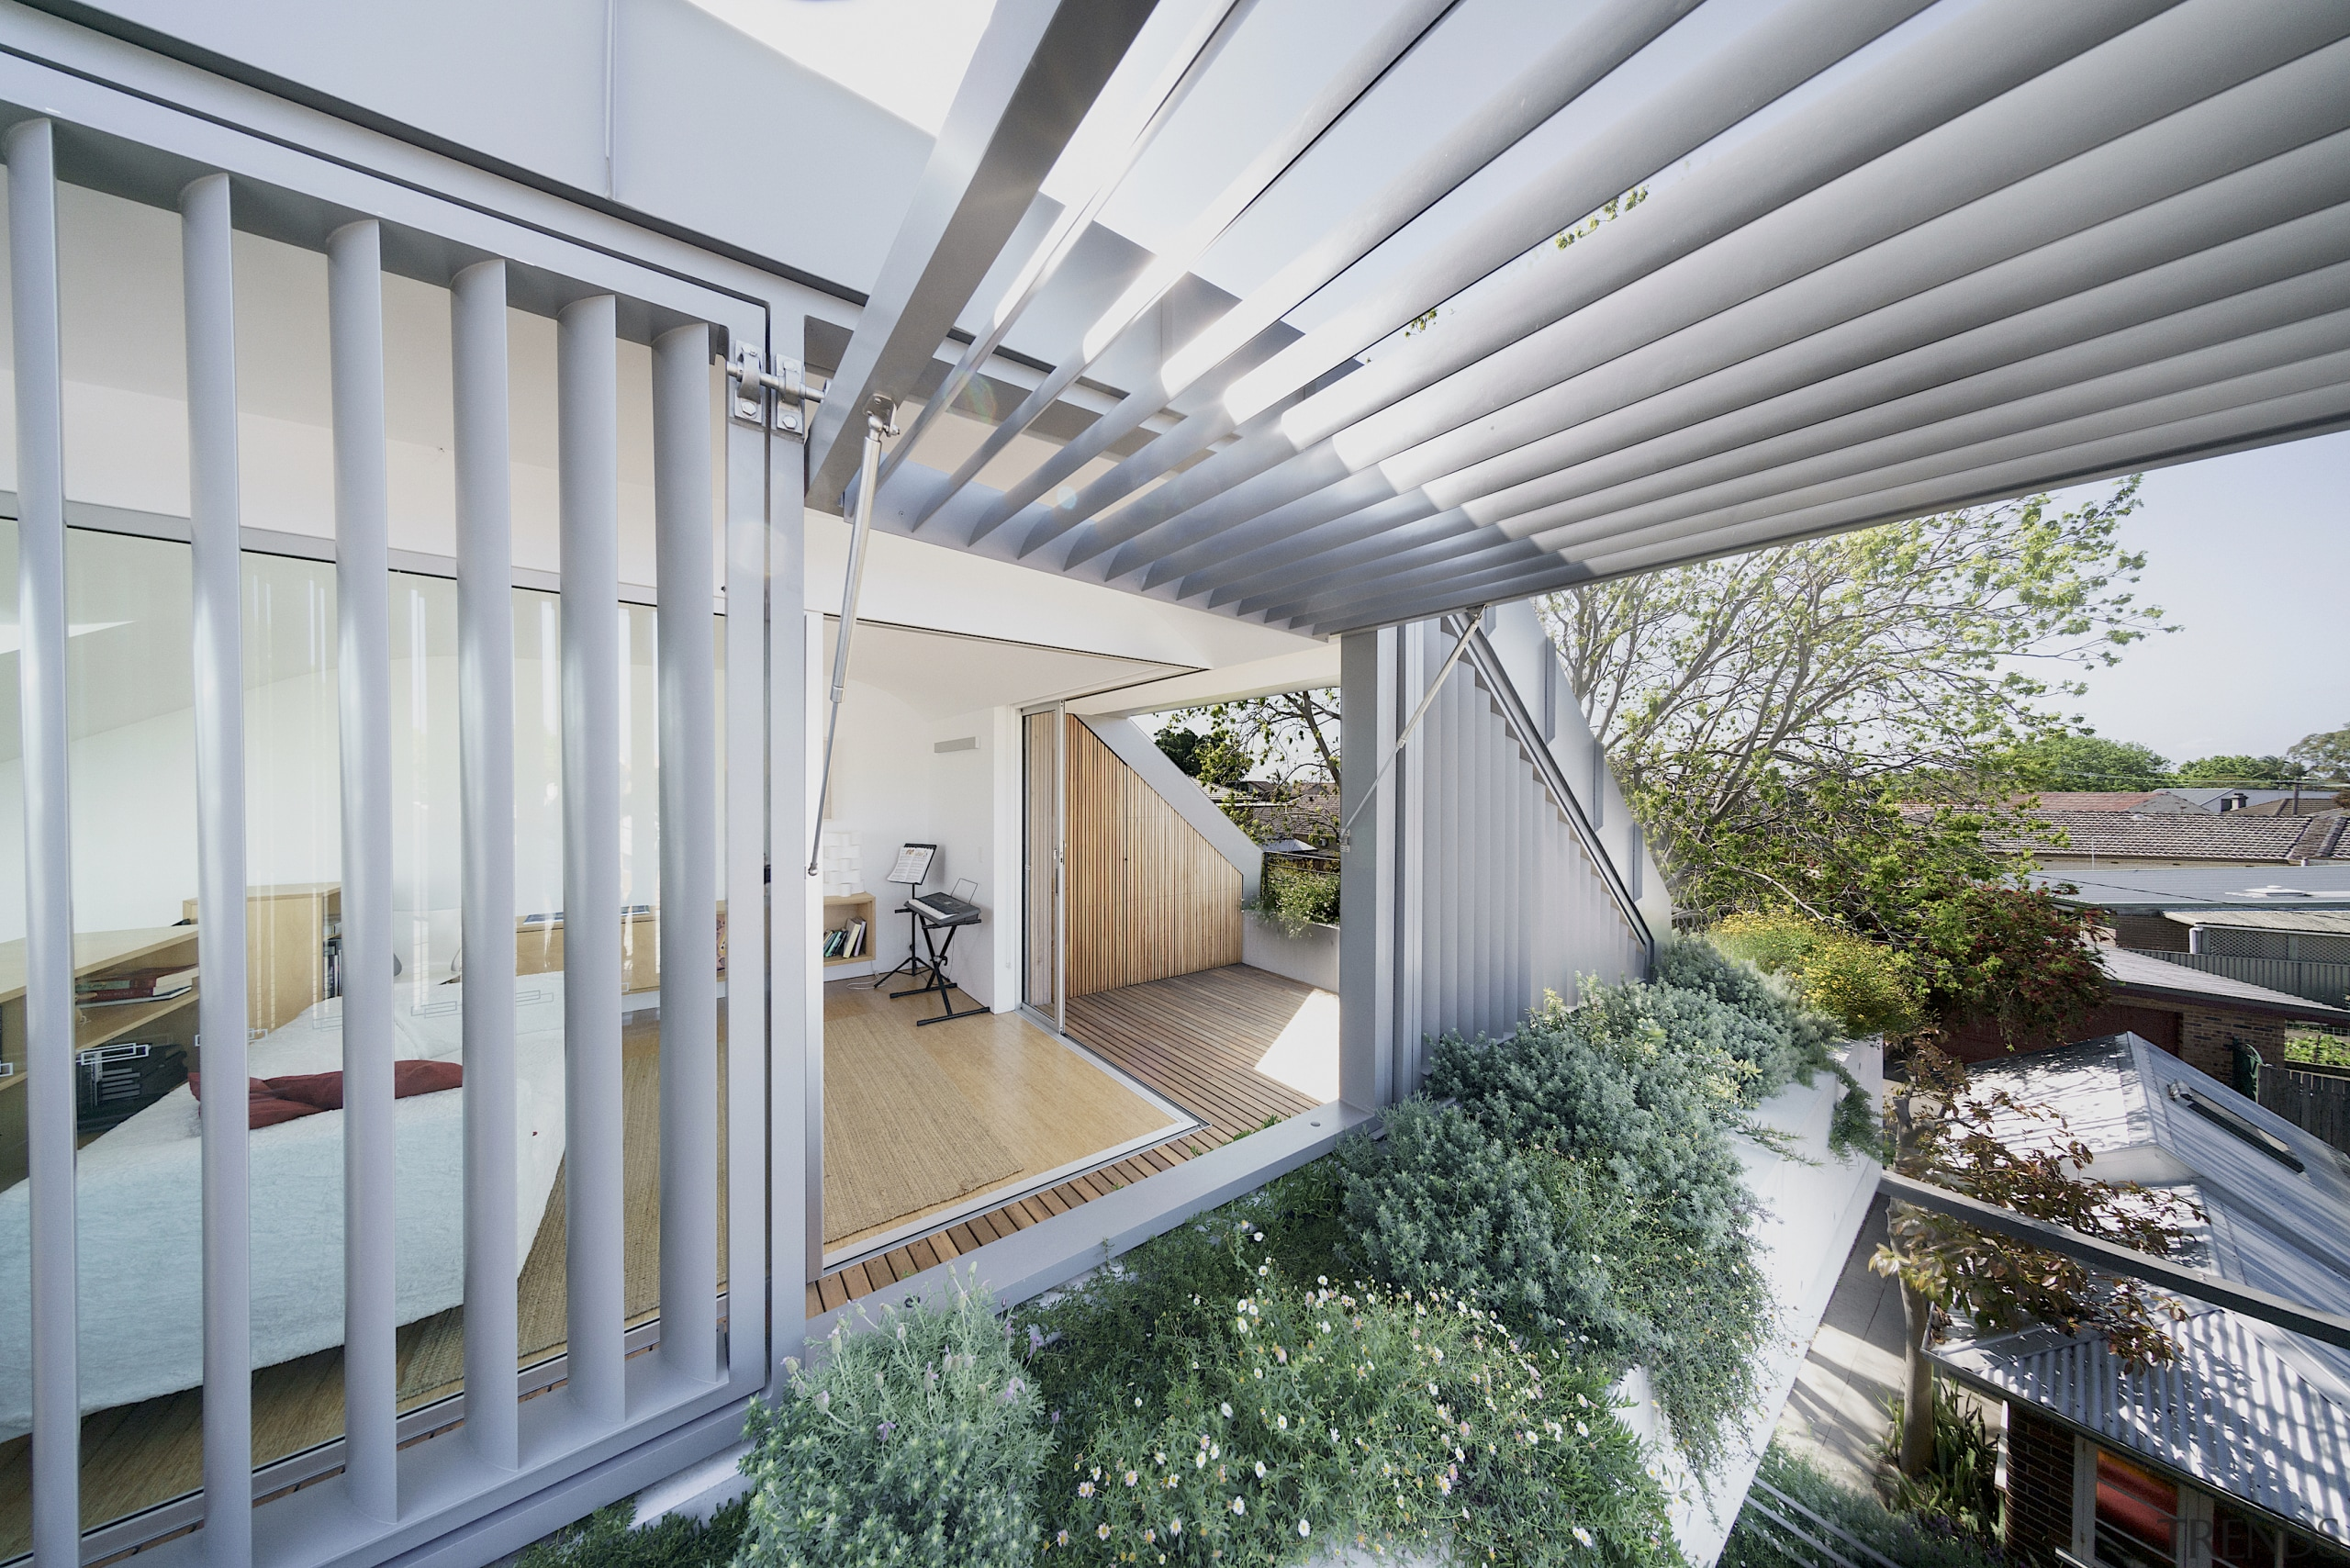 The house maximises passive heating and cooling and